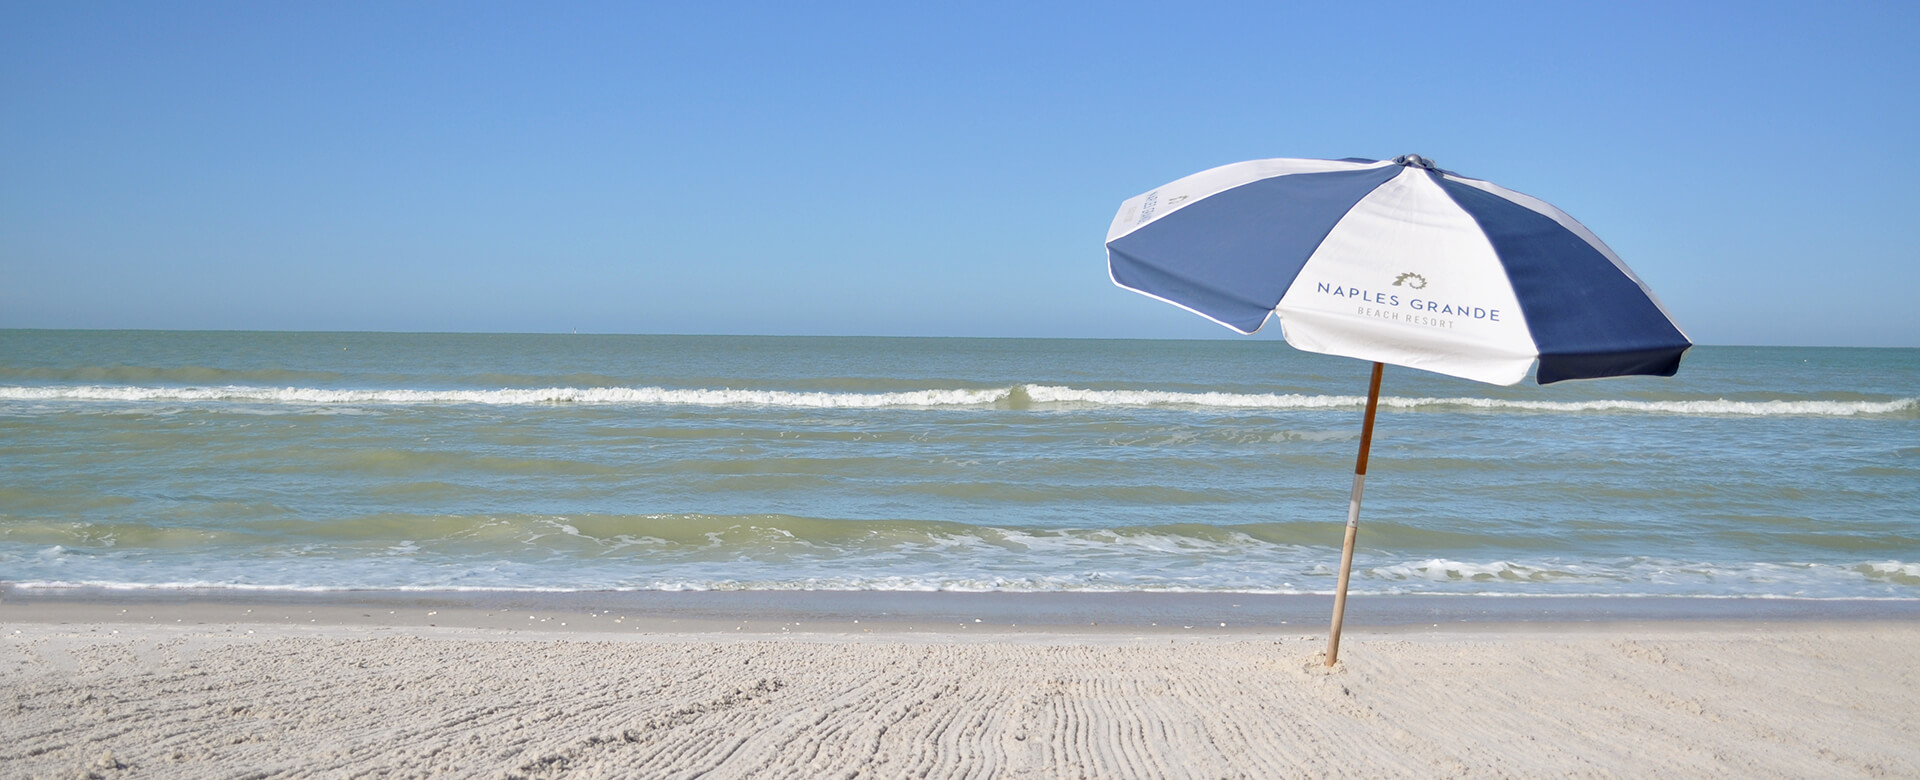 naples grande umbrella on beach